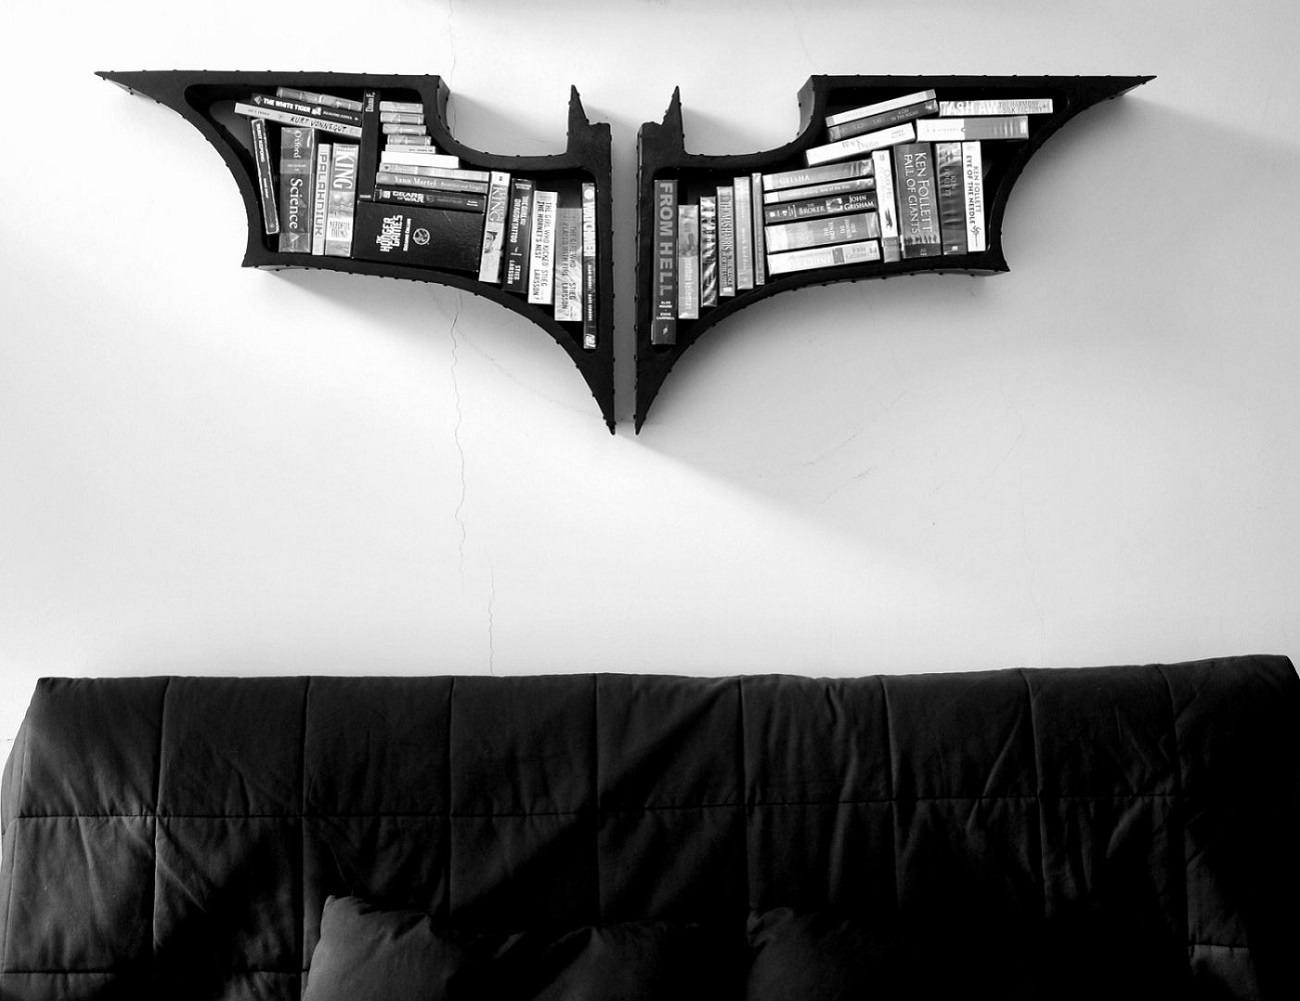 The+Dark+Knight+Bookshelves